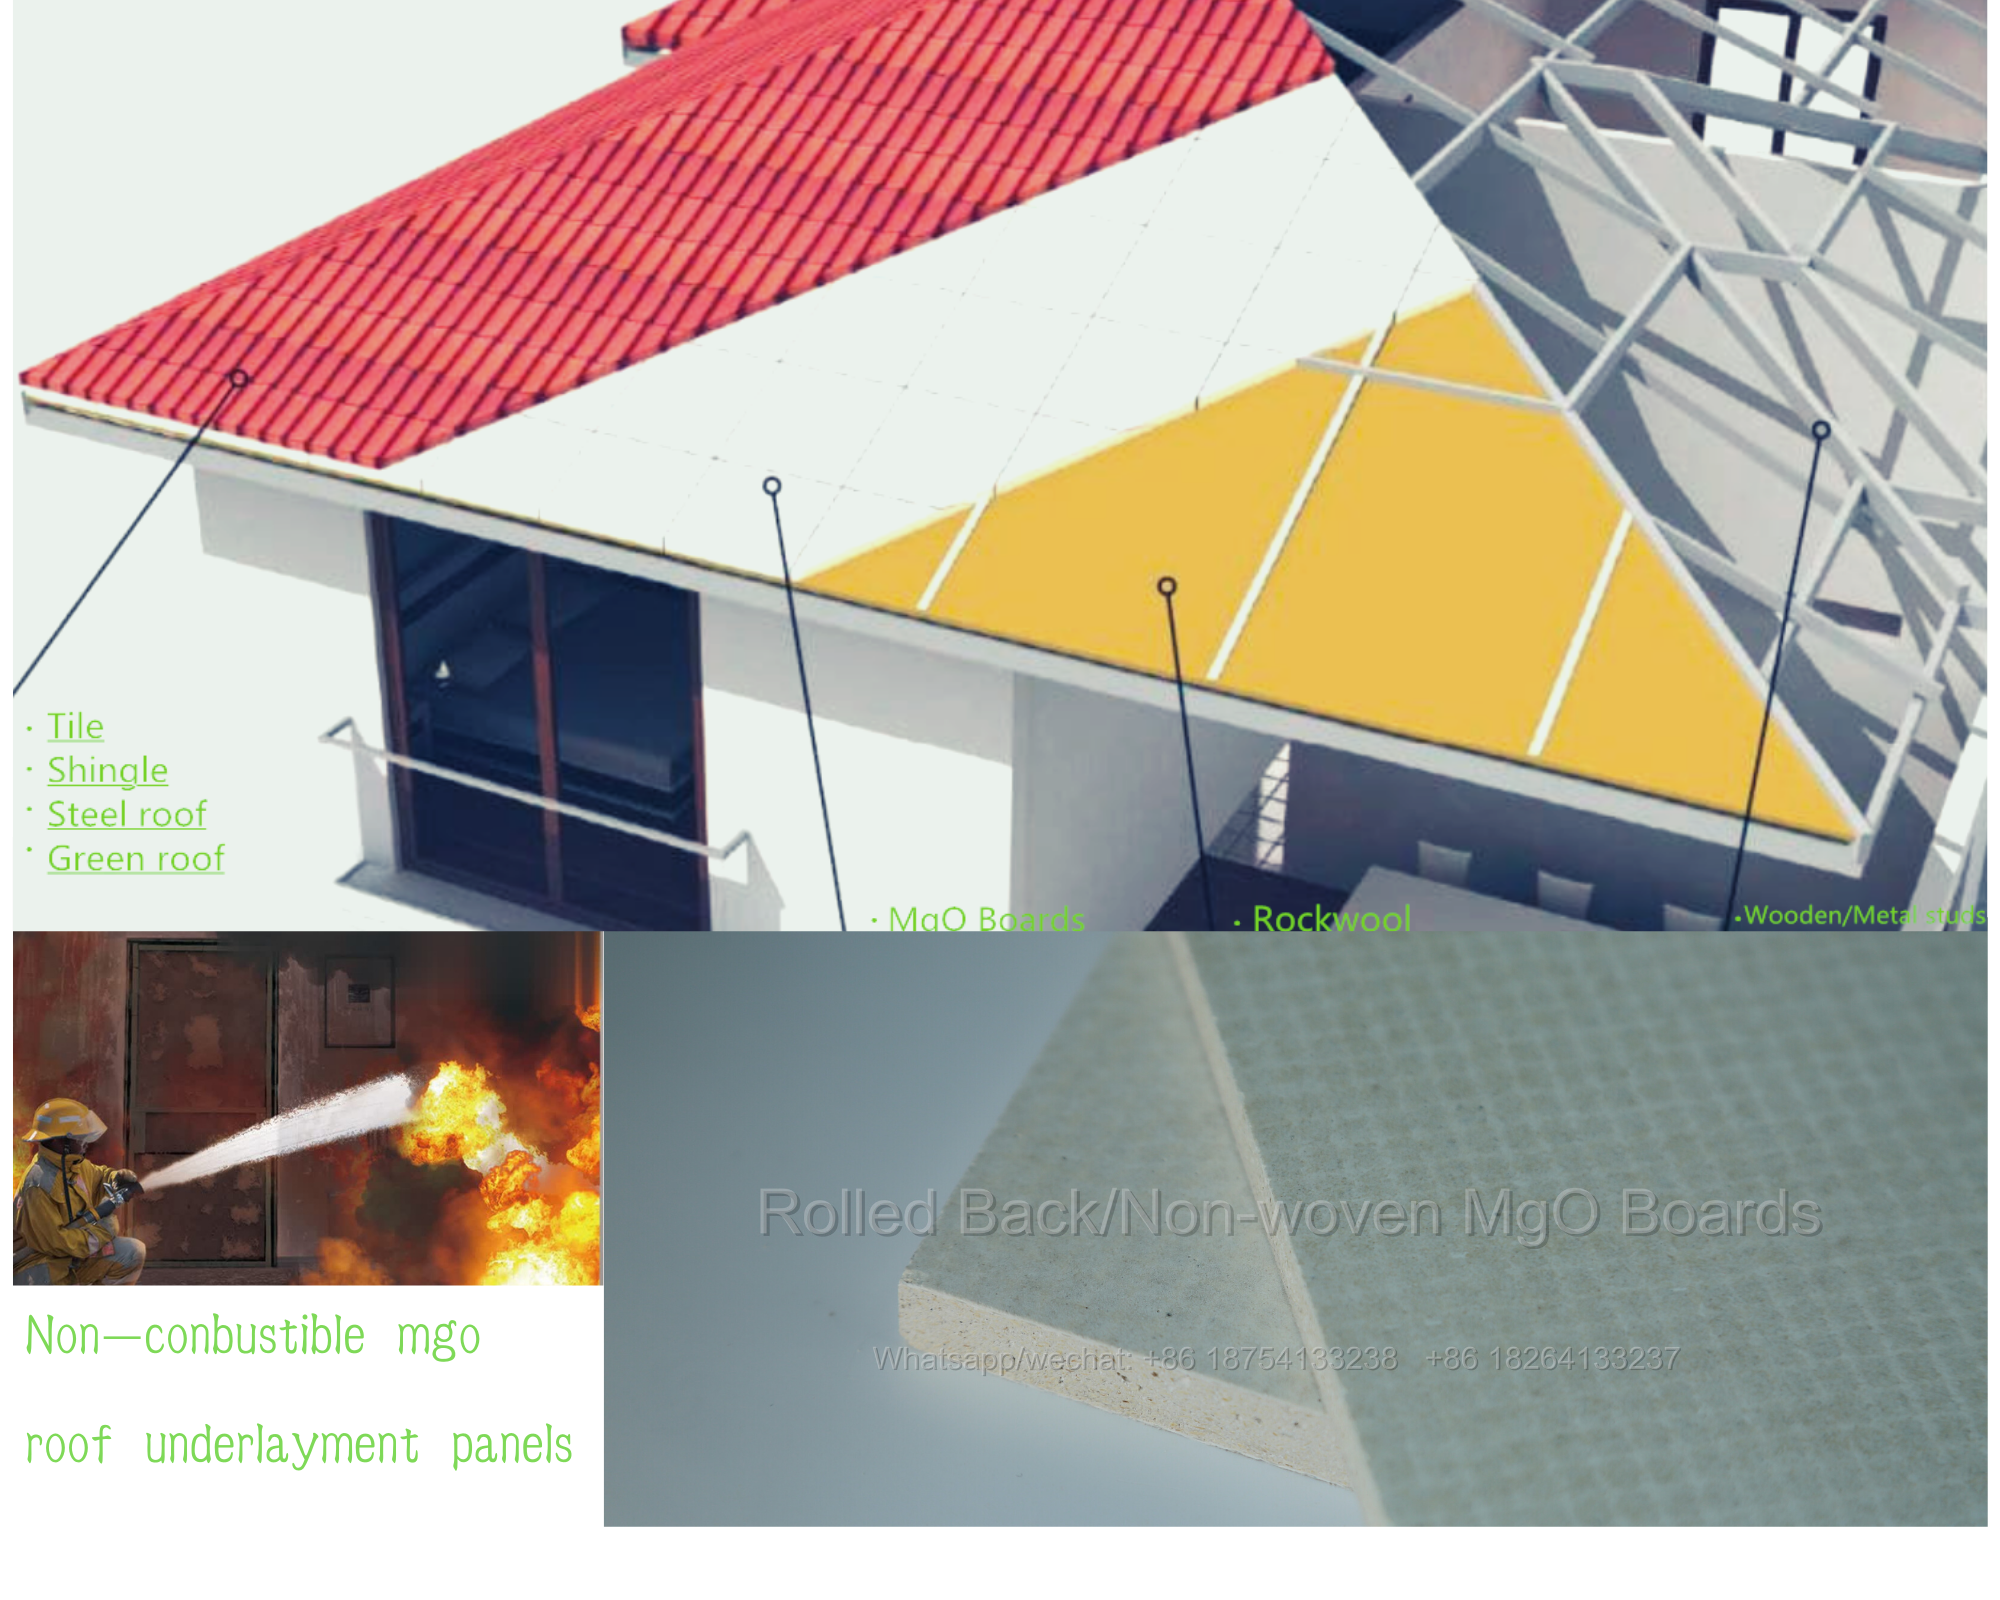 4 multiply 8 non-combustible insulated mgo roof deck